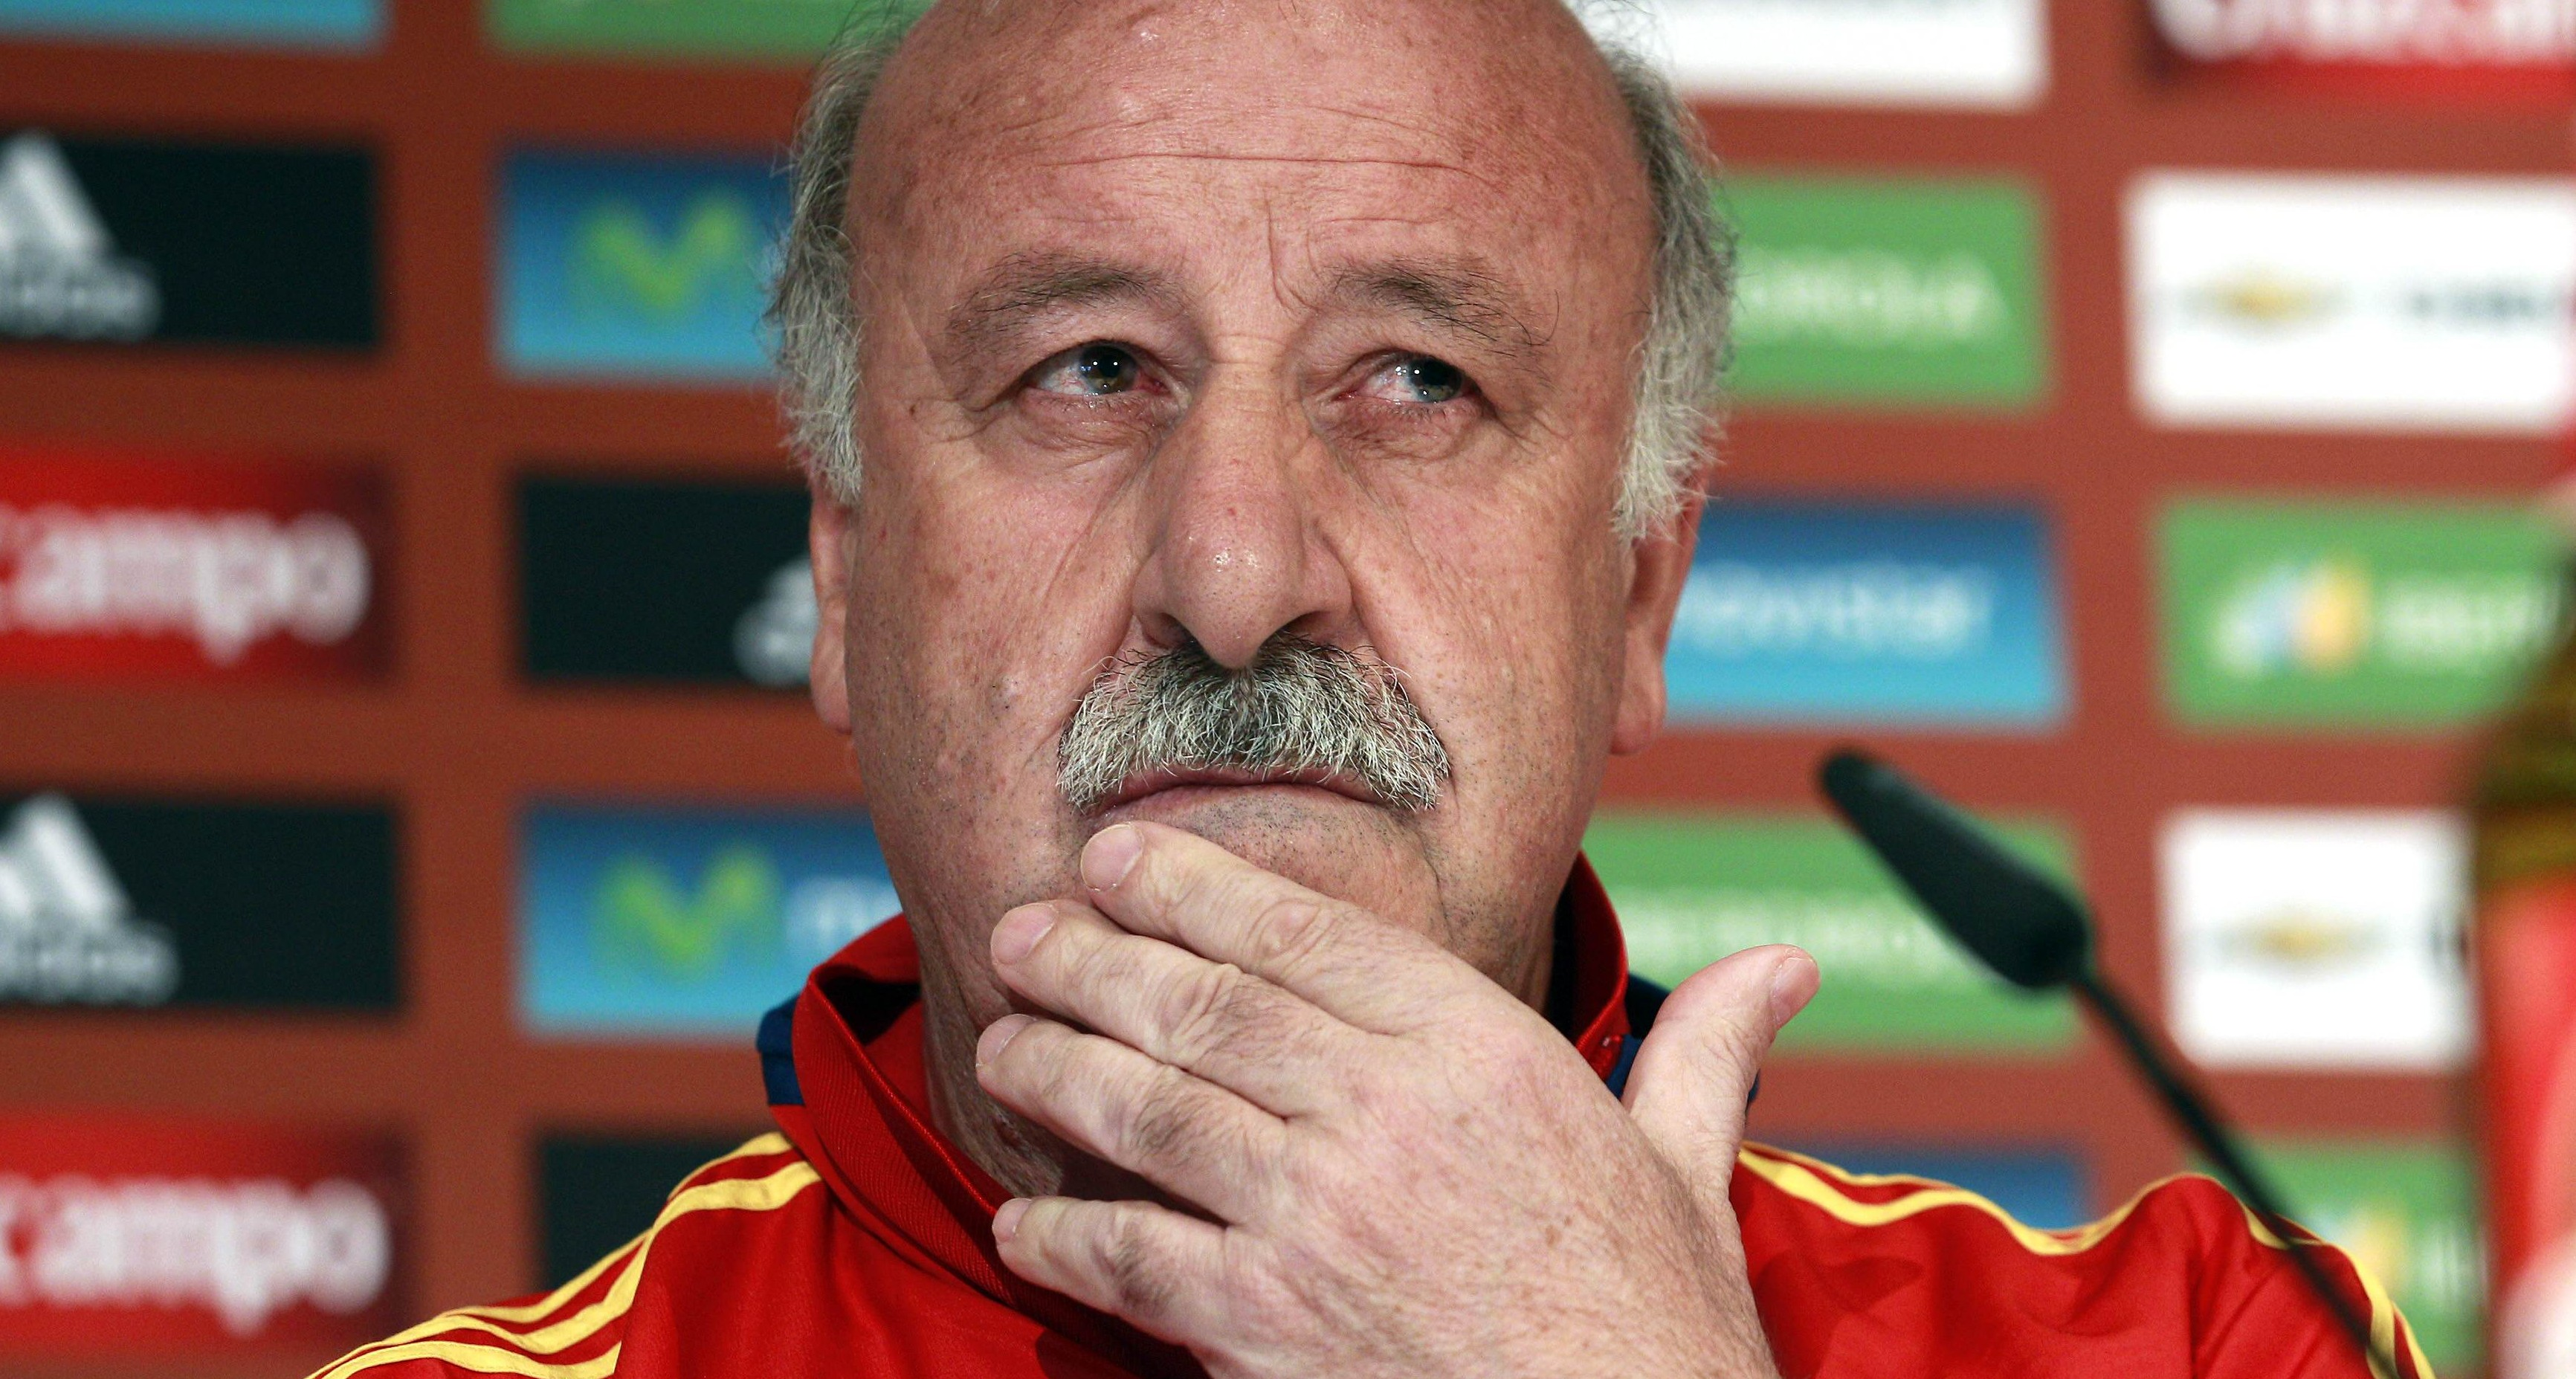 Spain's national soccer team coach Del Bosque attends a news conference in the western Austrian town of Schruns